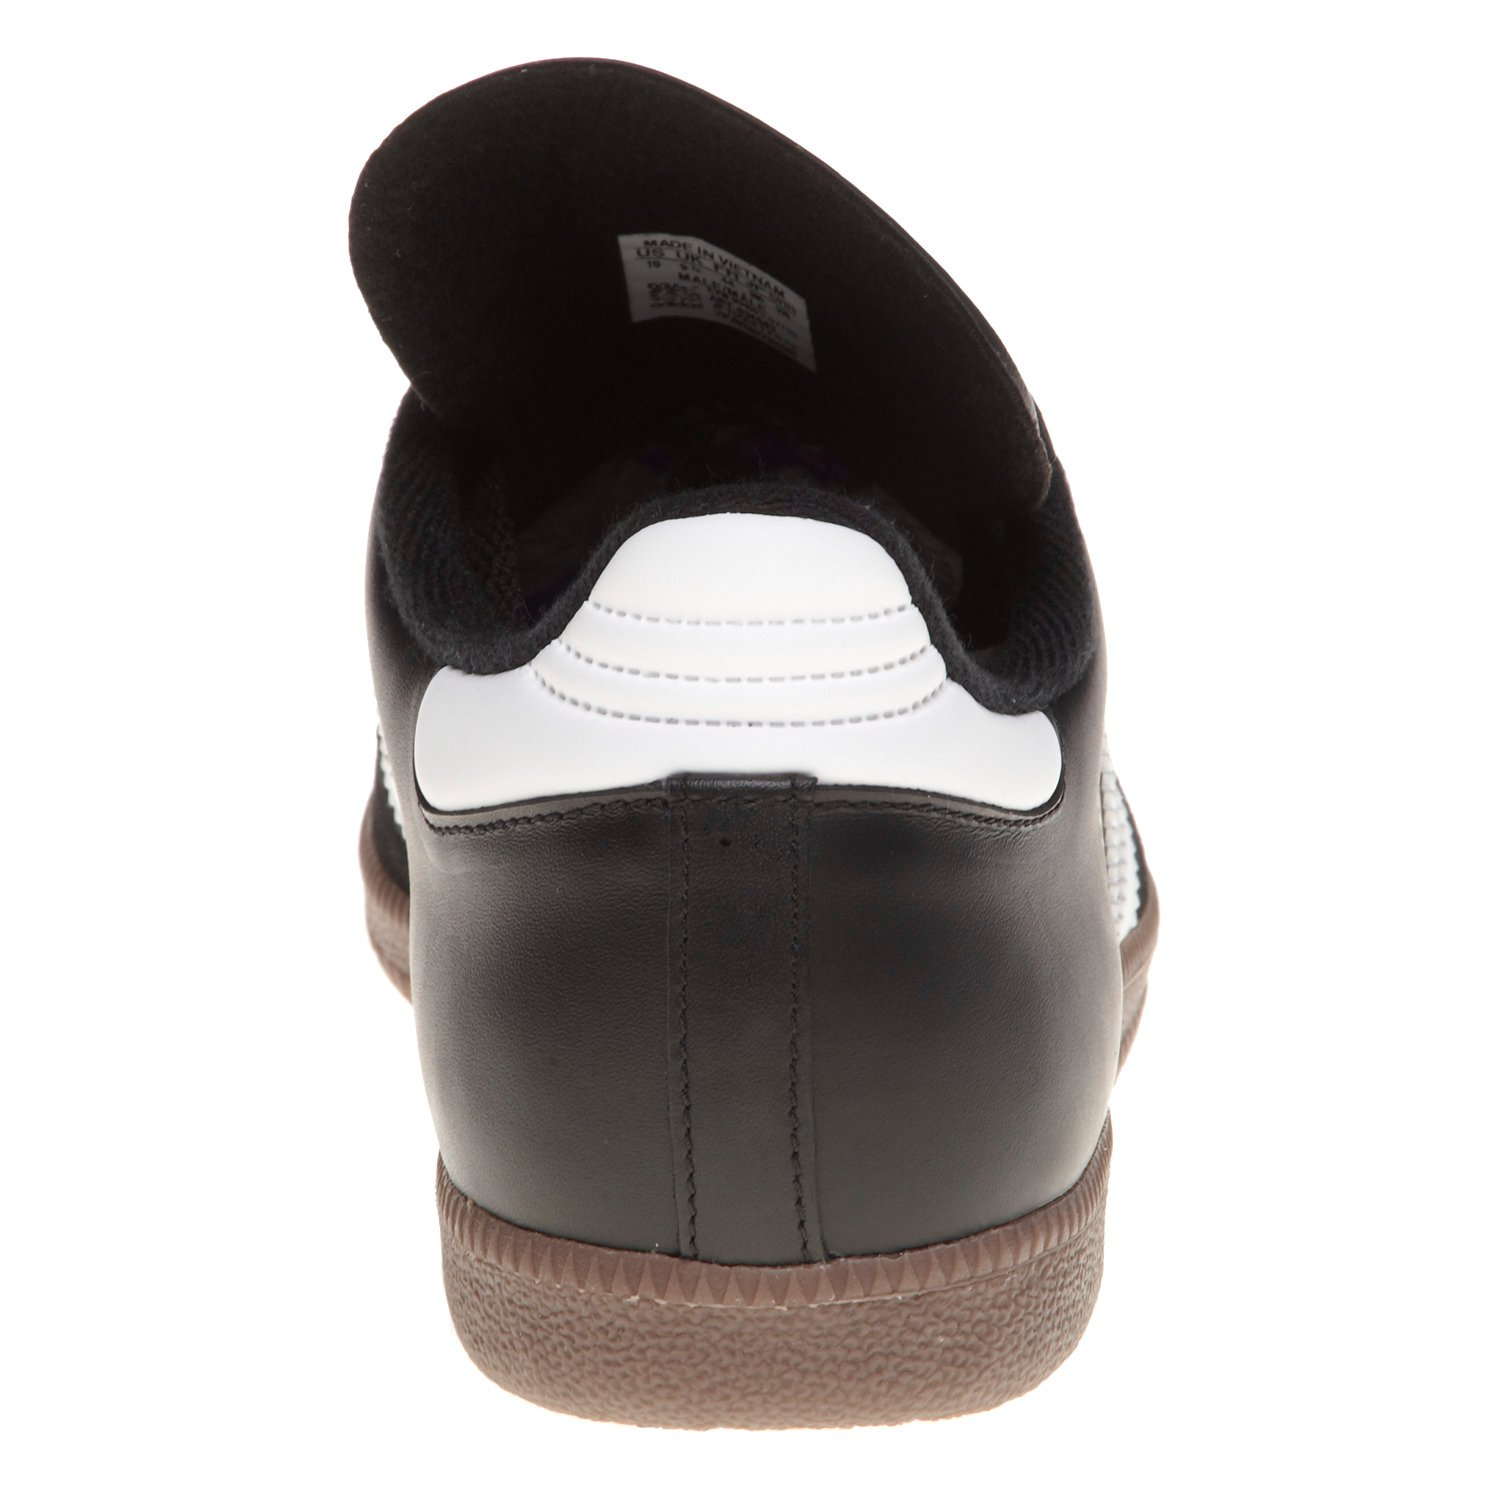 adidas Men's Samba Classic Shoes - view number 5